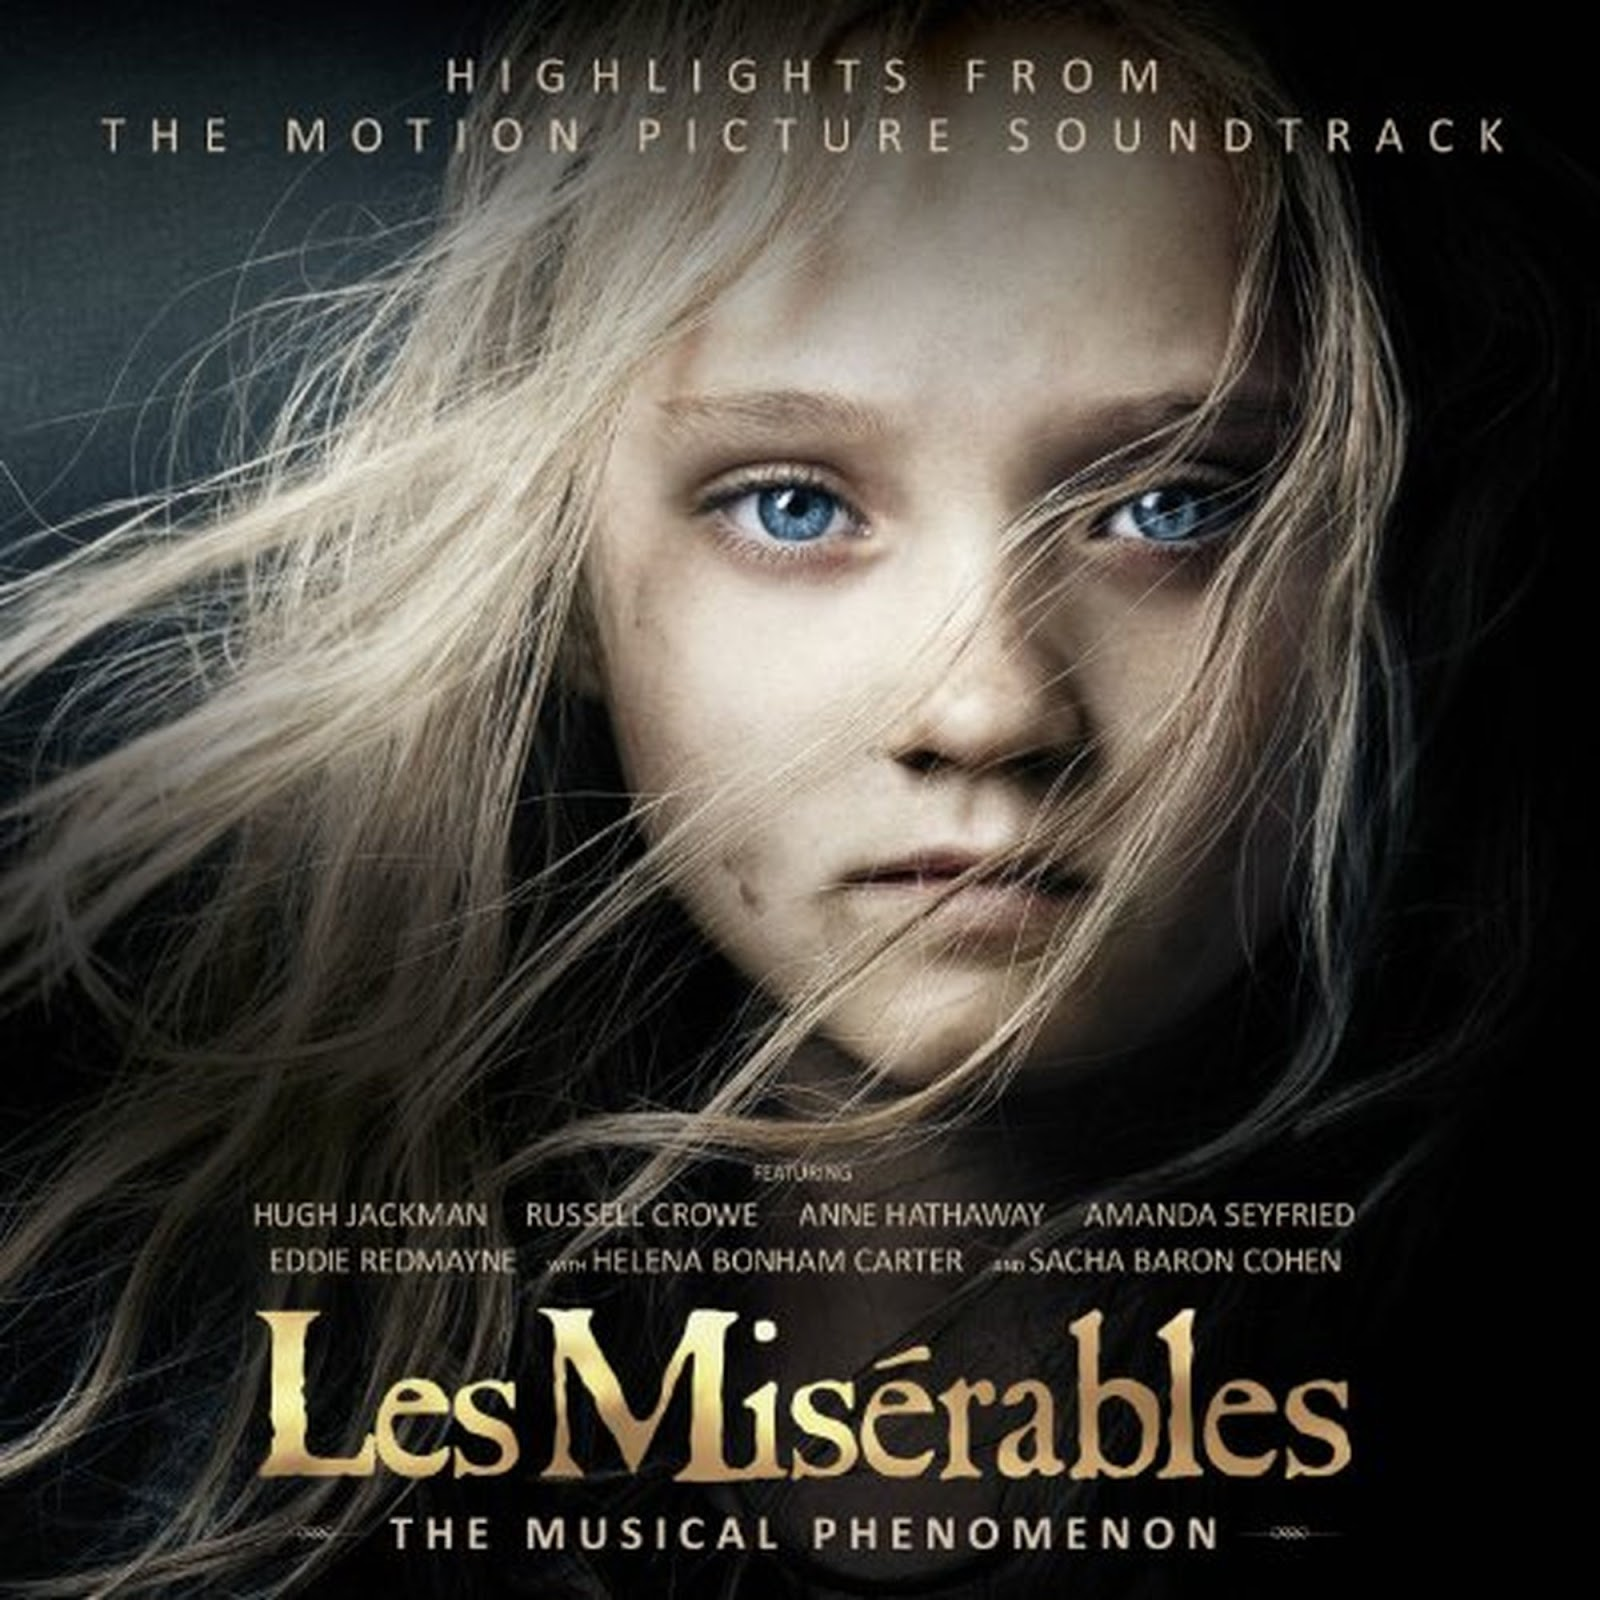 http://2.bp.blogspot.com/-Xg0JOWBX_rs/USUbvHtK1iI/AAAAAAAABmQ/QNdxR56k47I/s1600/cd_les_miserables_soundtrack.jpg